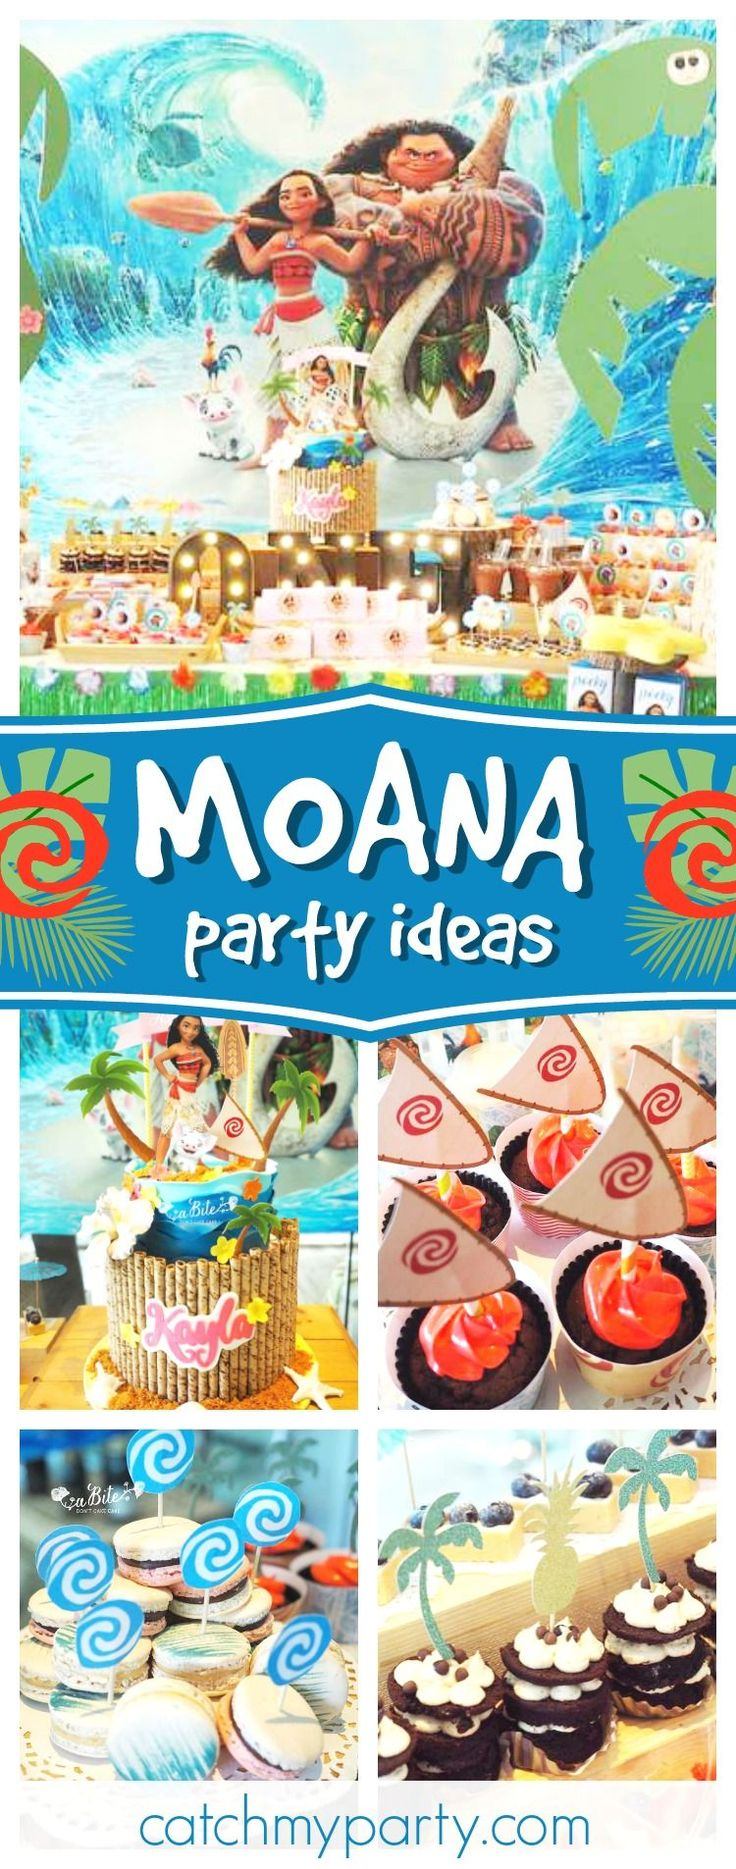 Take a look at this incredible Moana 1st birthday party! The tropical birthday cake is amazing!!  See more party ideas and share yours at CatchMyParty #catchmyparty #moanabirthdayparty #luau #1stbirthdayparty